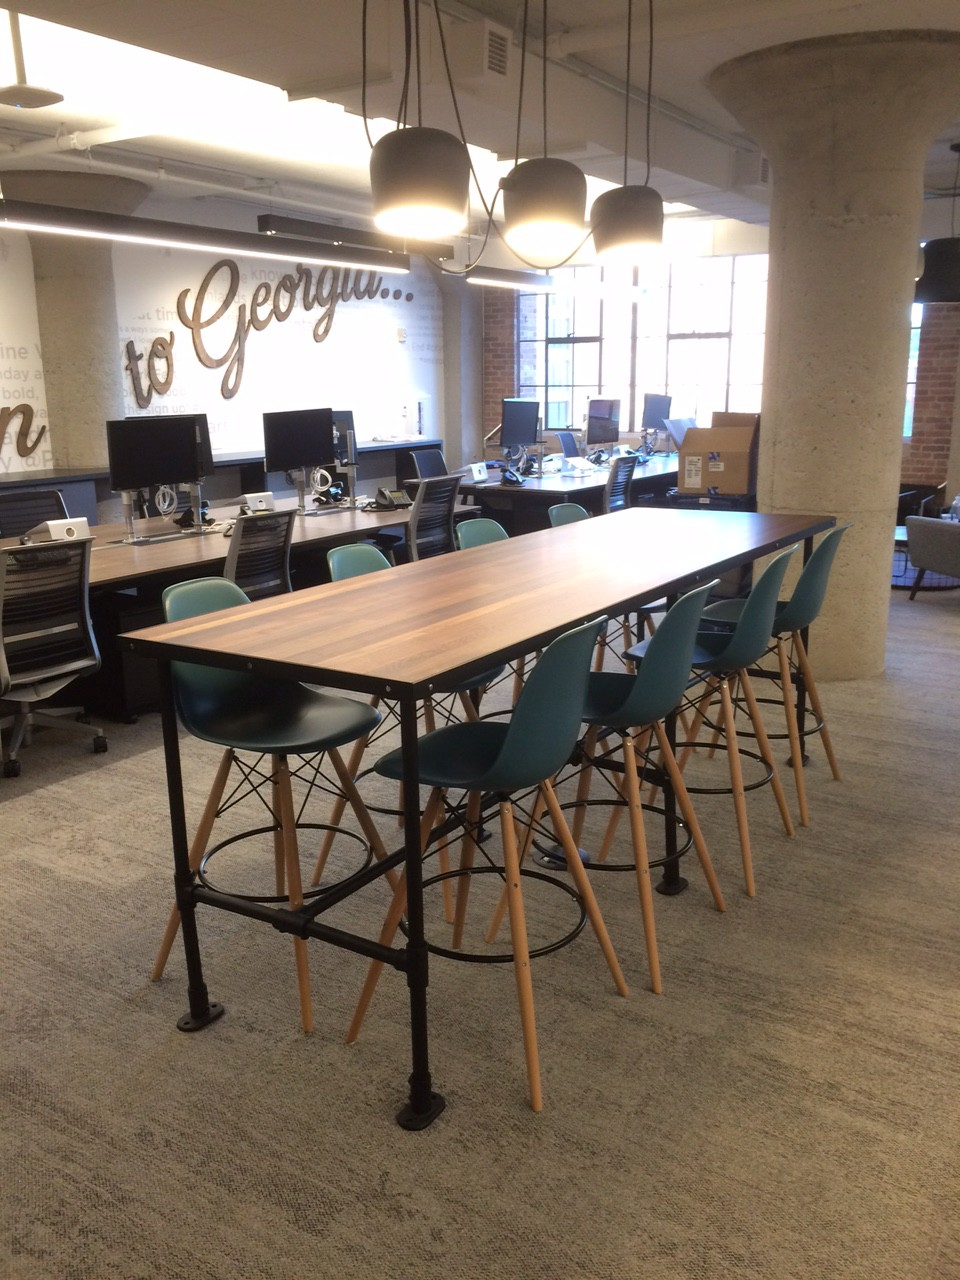 office cafeteria design wood at twitter formaspace built their custom employee cafeteria table and desks how office cafeterias can step up your culture game